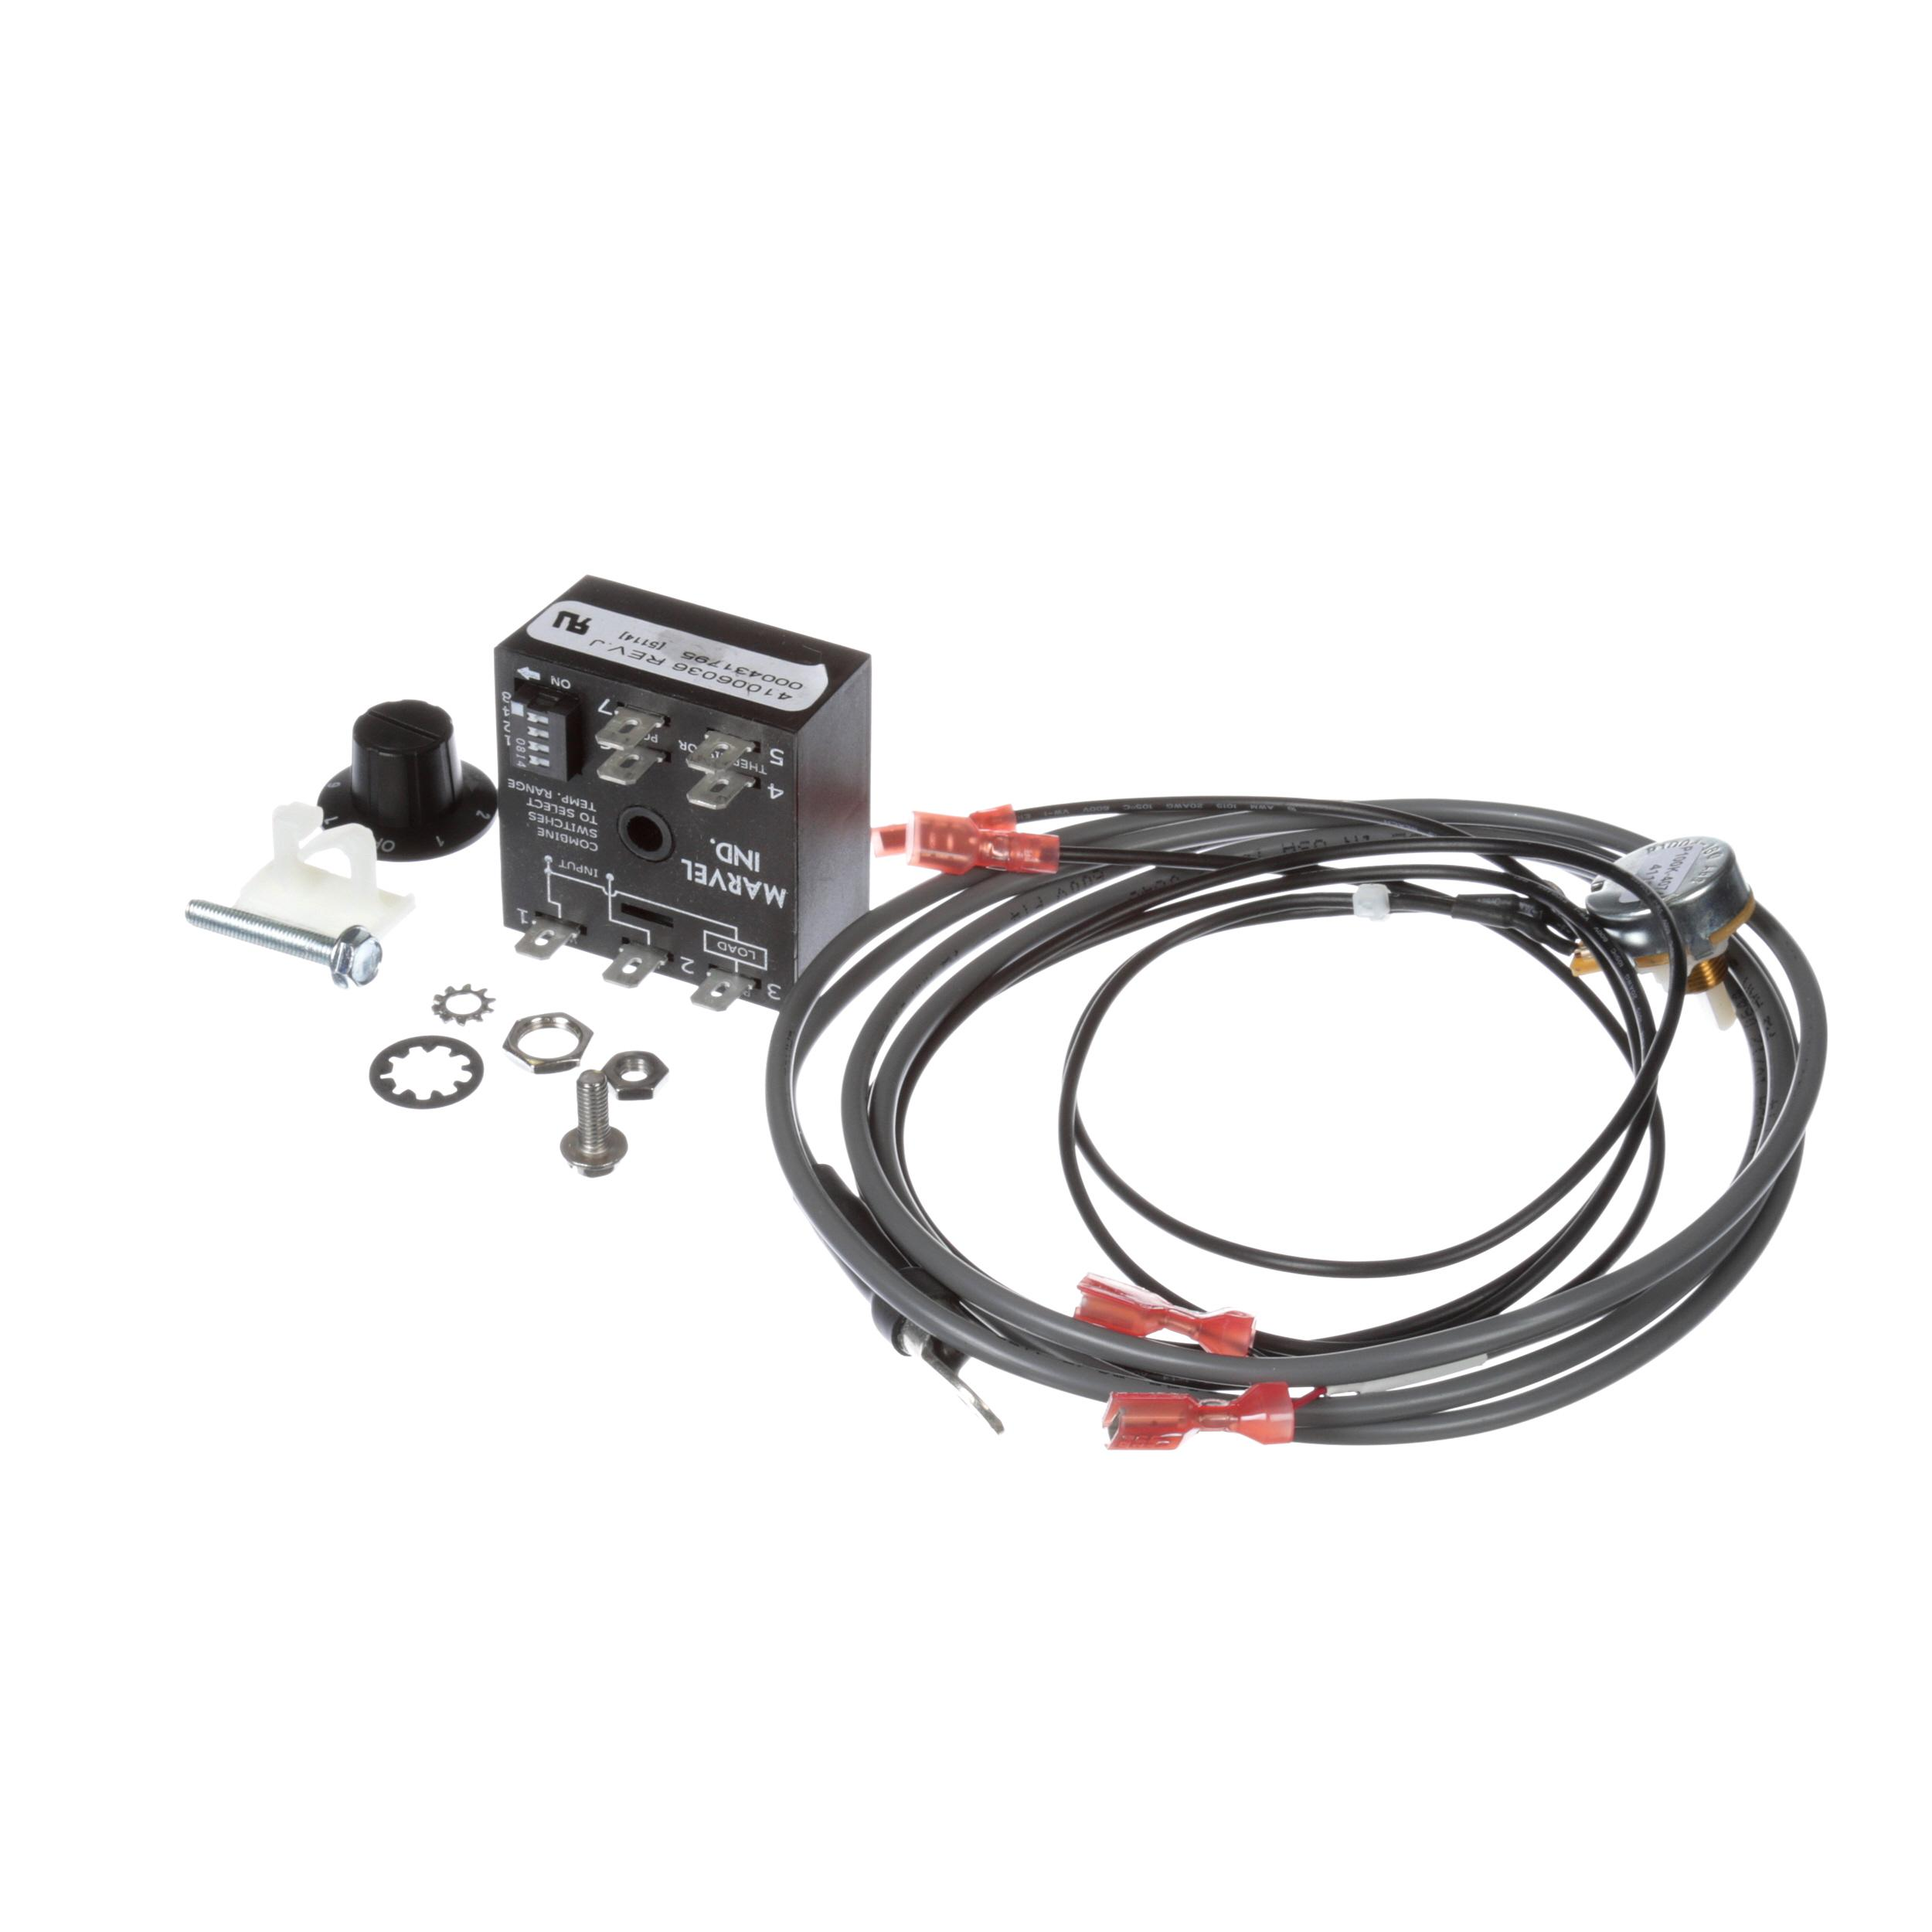 Marvel S Afield Replace Honeywell Contrls Part 42246442 Wiring Harness Extension Socket Connector Ric Dryer Power Cord